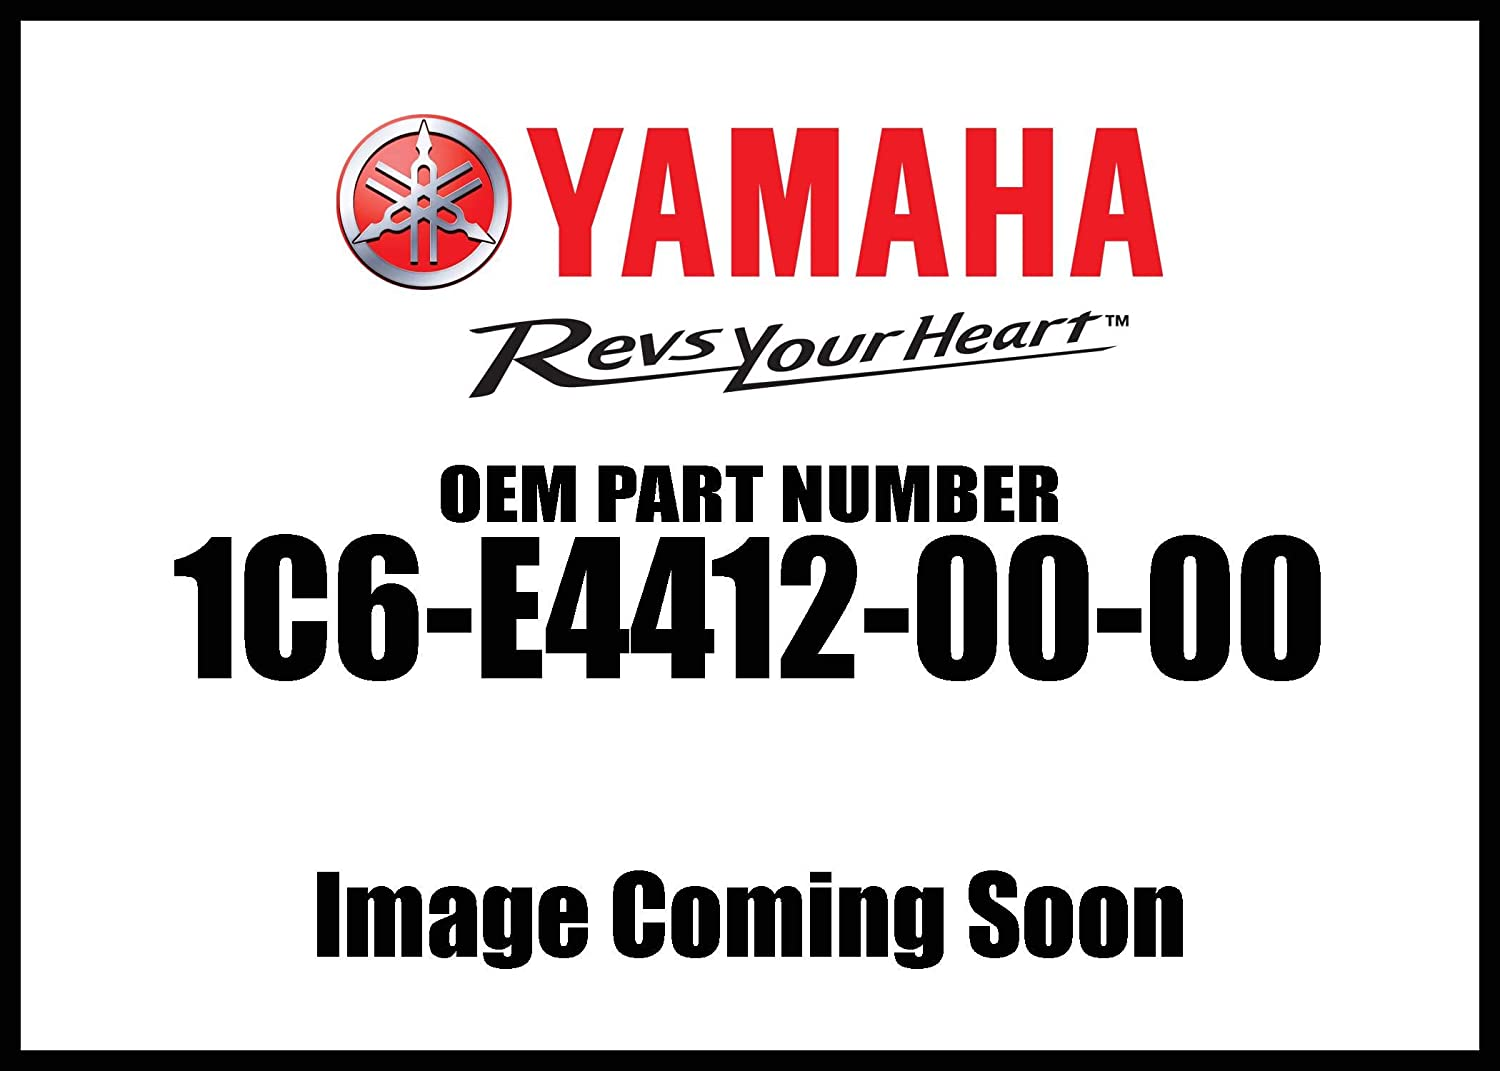 Yamaha 1C6-E4412-00-00 Cap, Cleaner Case; 1C6E44120000 Made by Yamaha